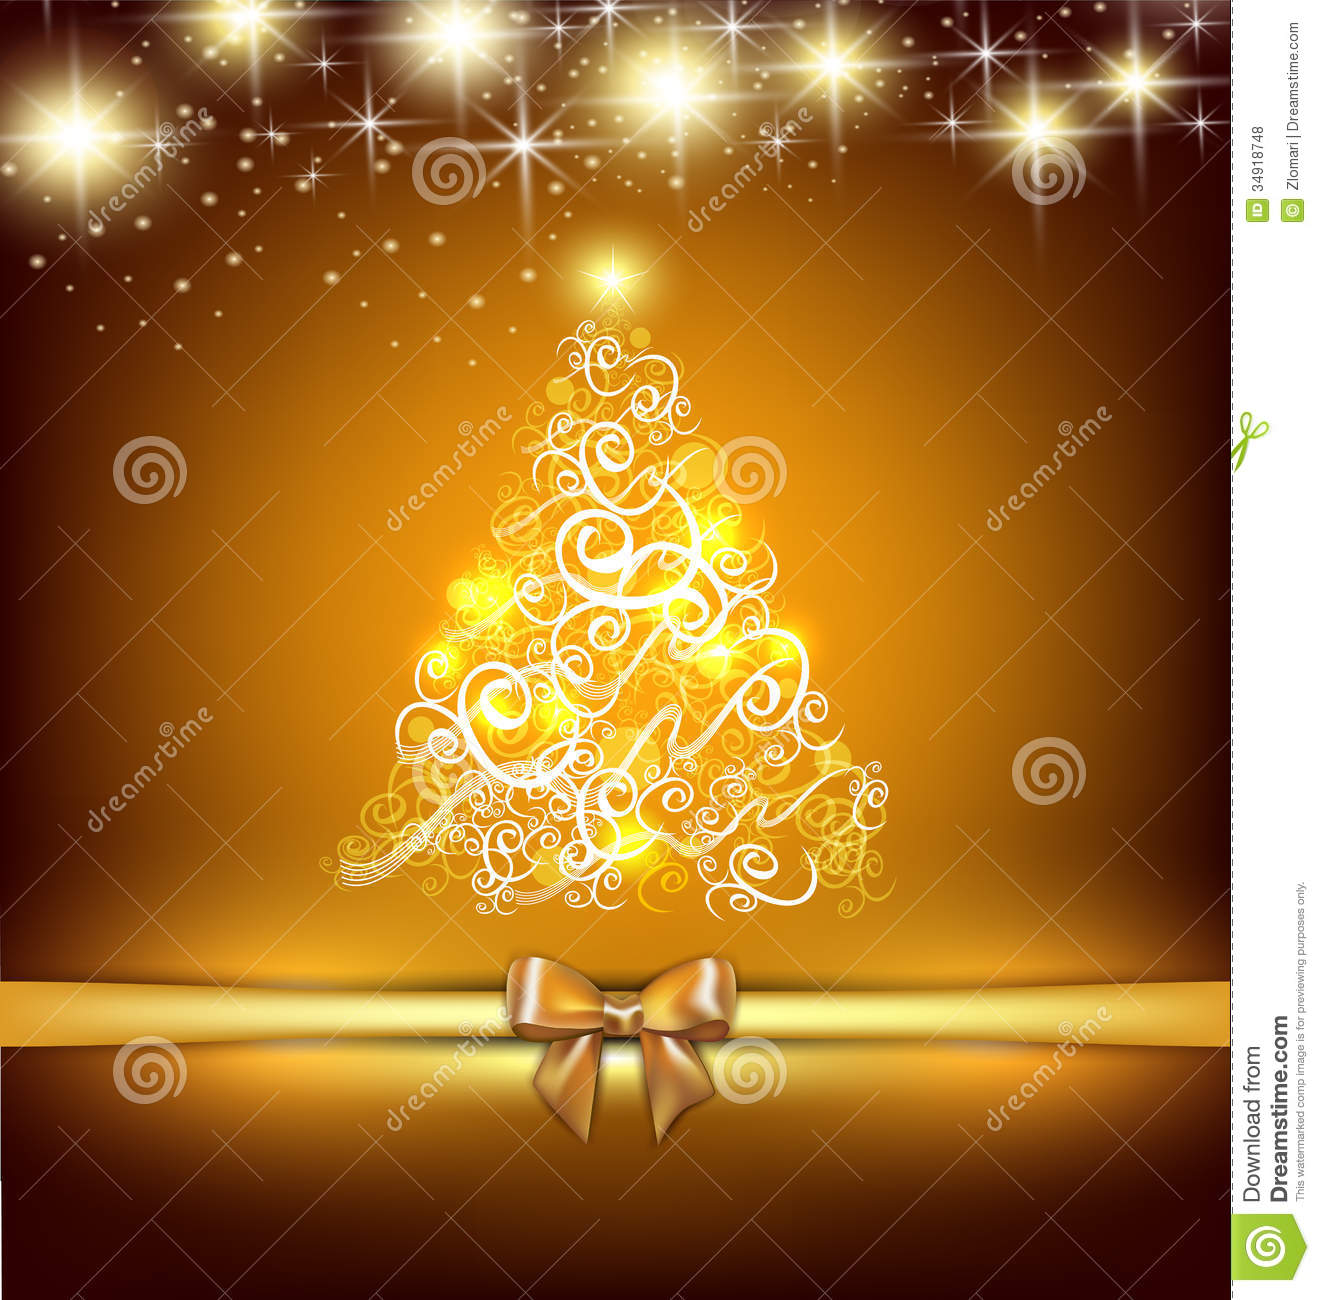 holiday background stock vector  illustration of greeting